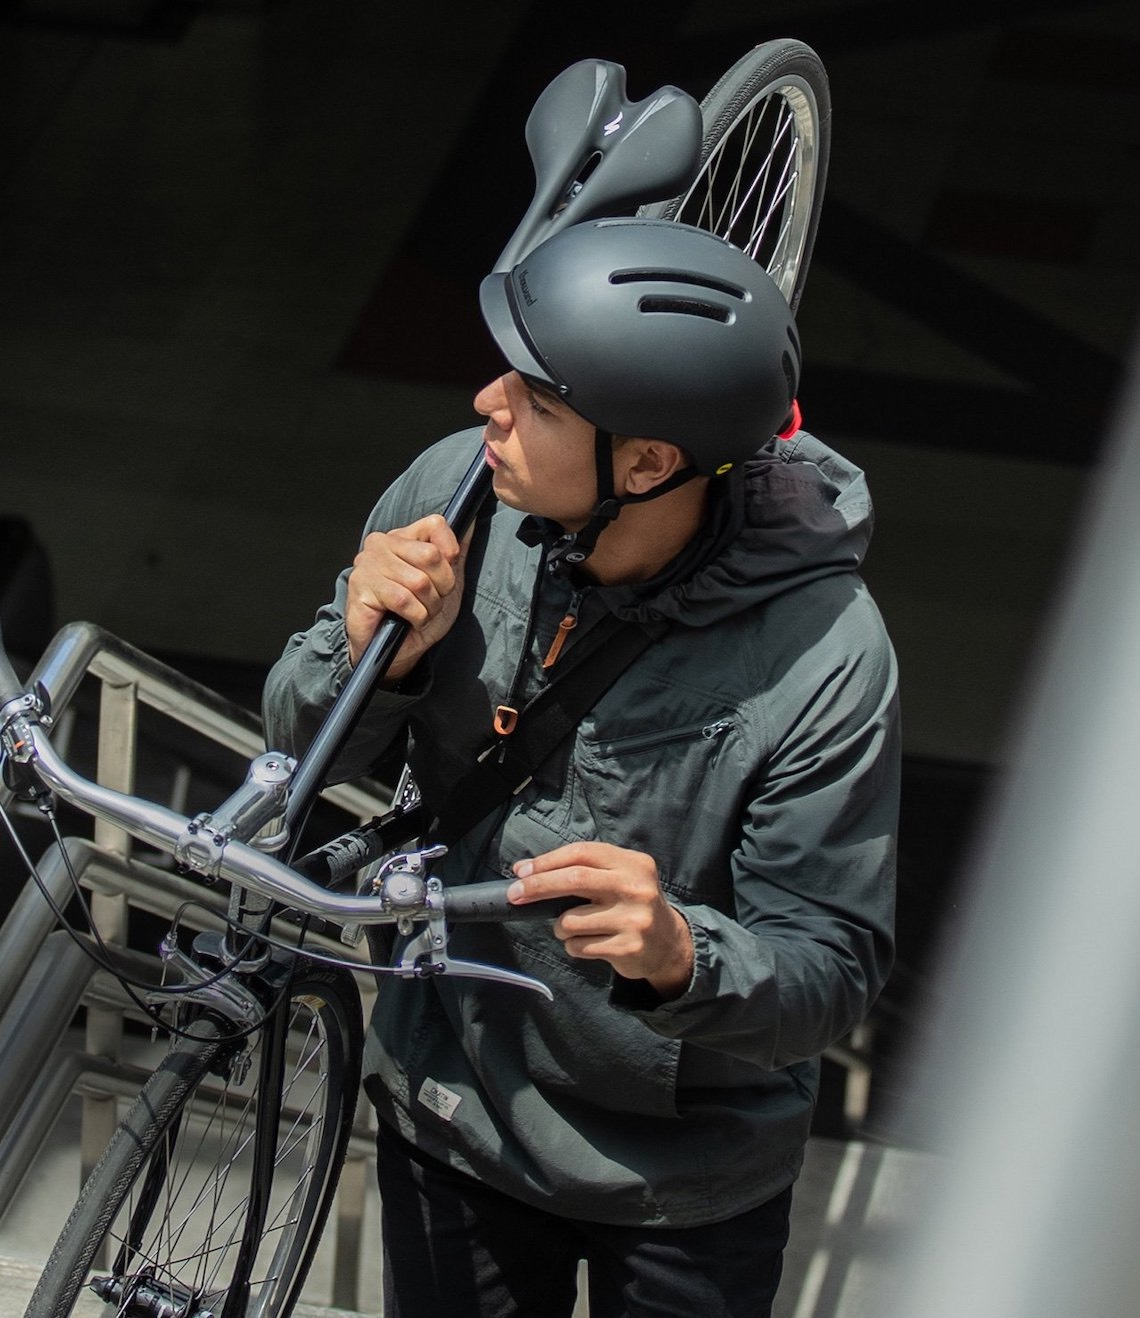 Thousand_Chapter_Collection_helmets_urbancycling_8